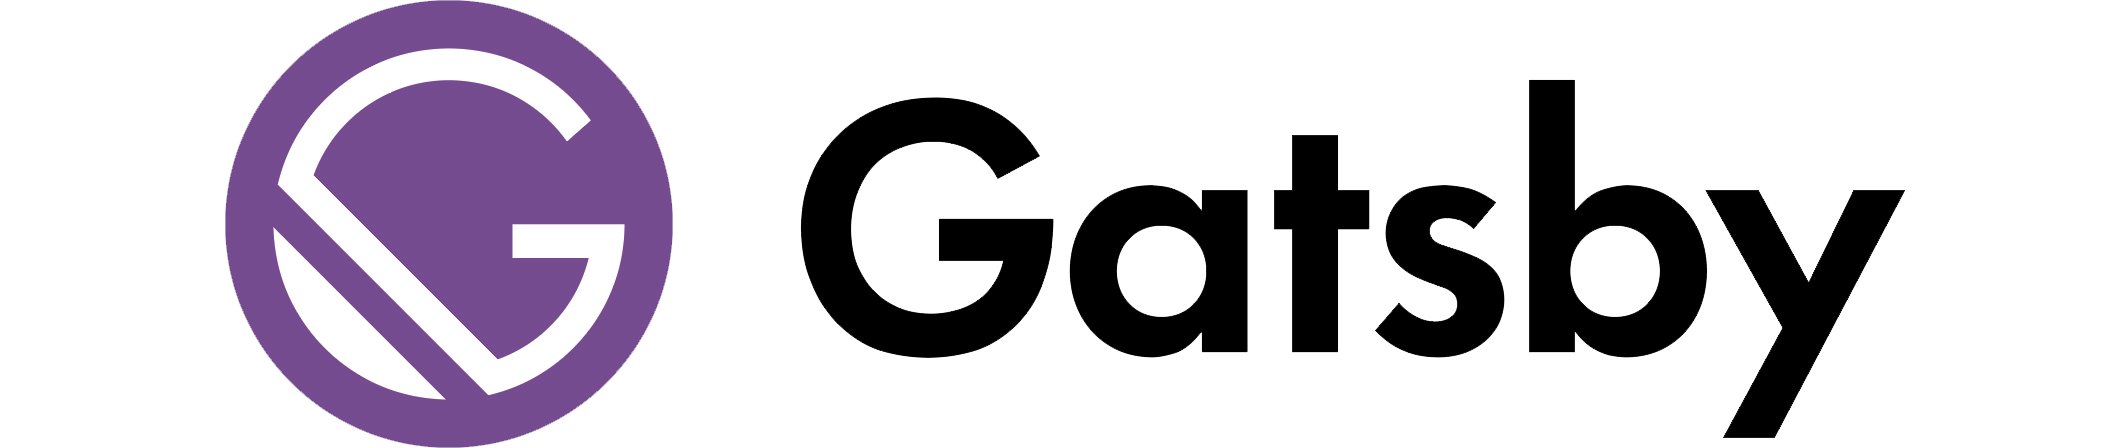 gatsby js web developer